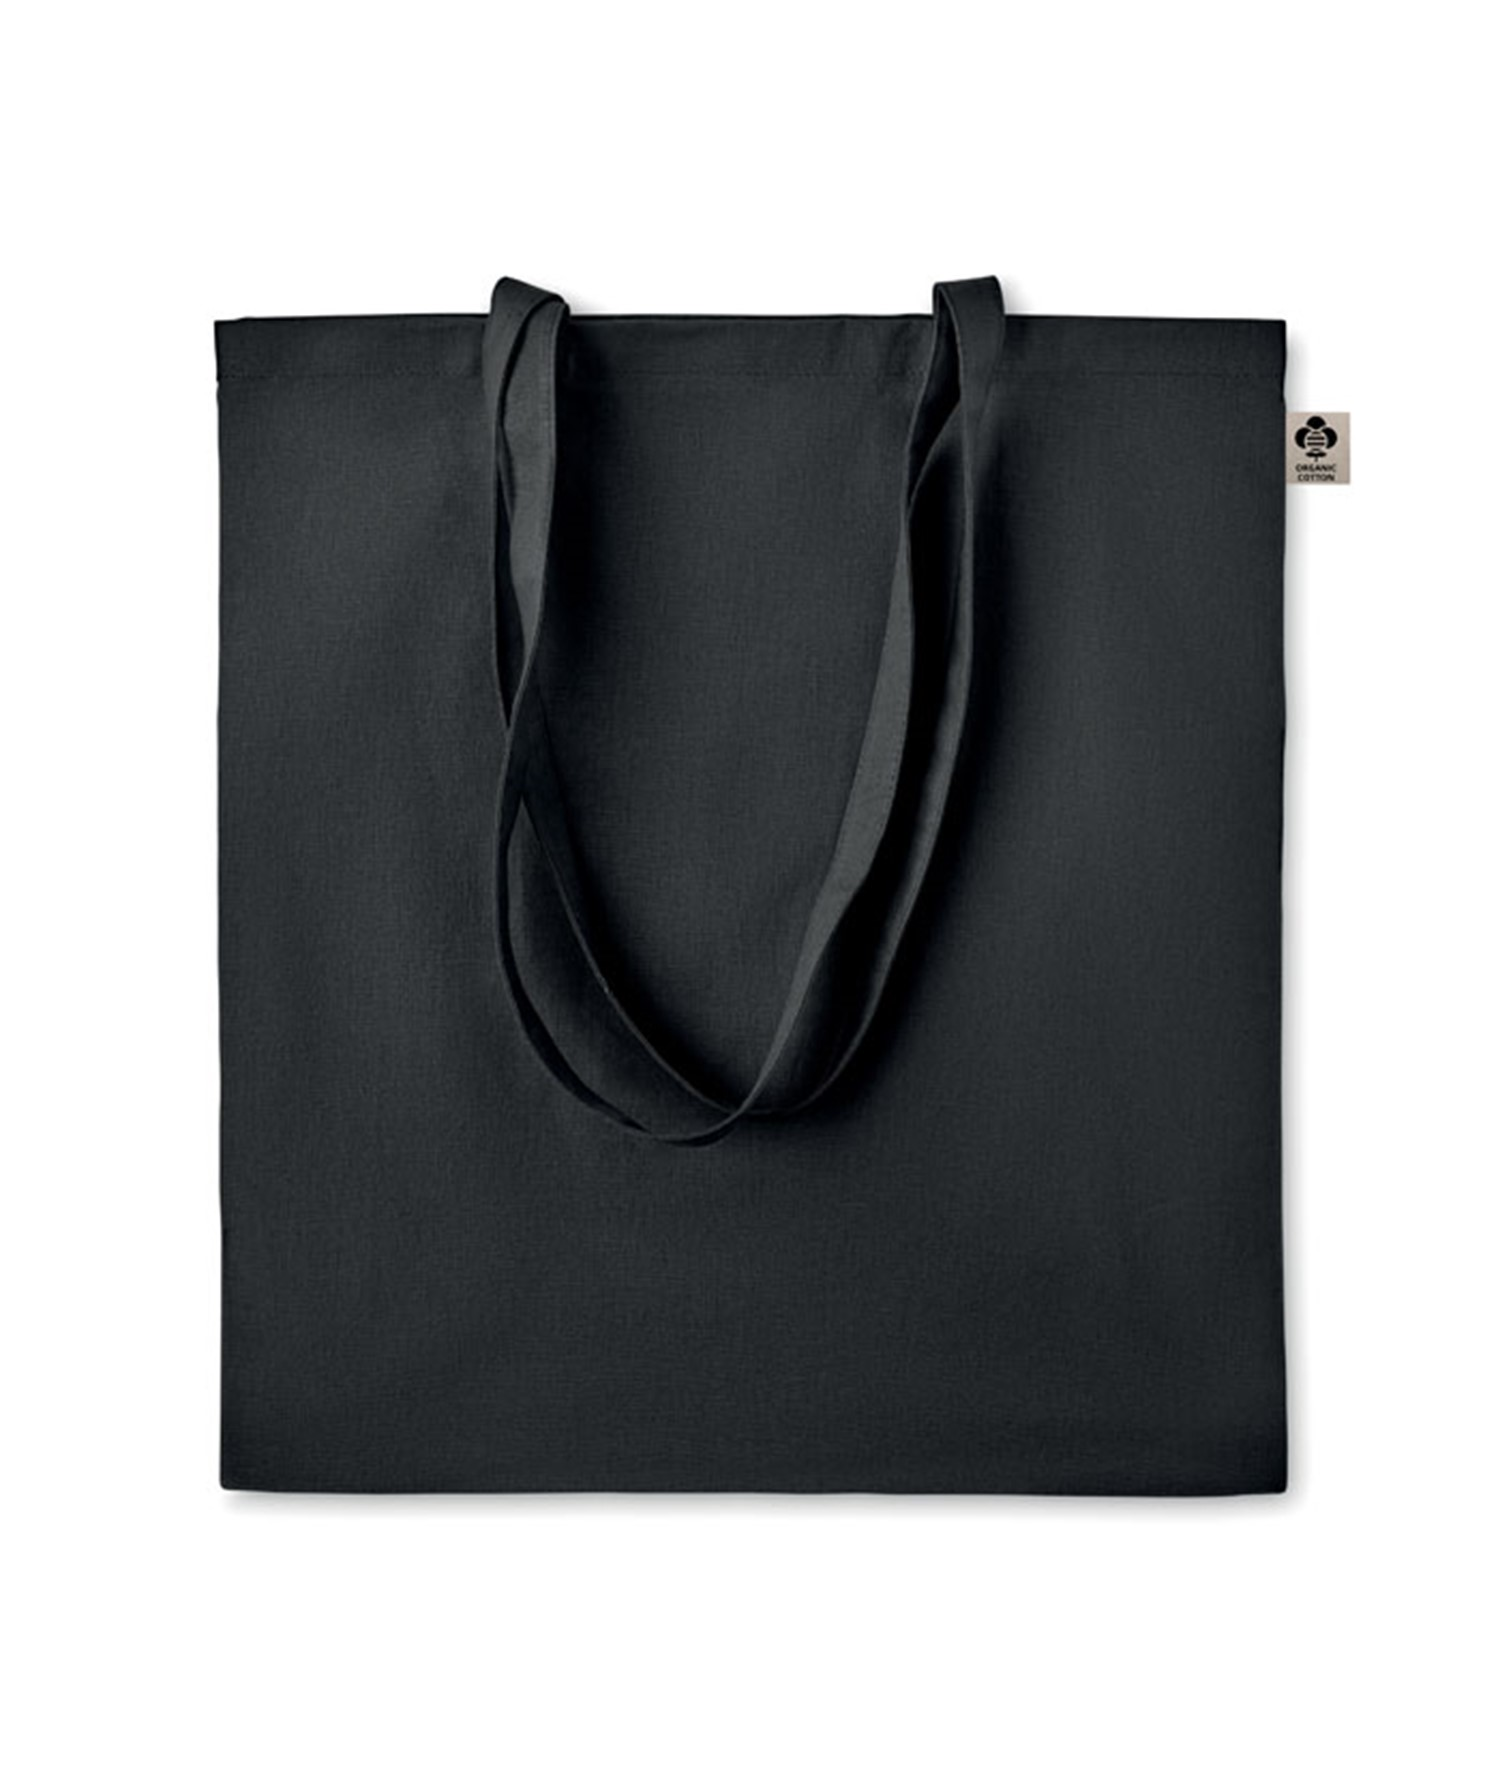 ZIMDE COLOUR - ORGANIC COTTON SHOPPING BAG